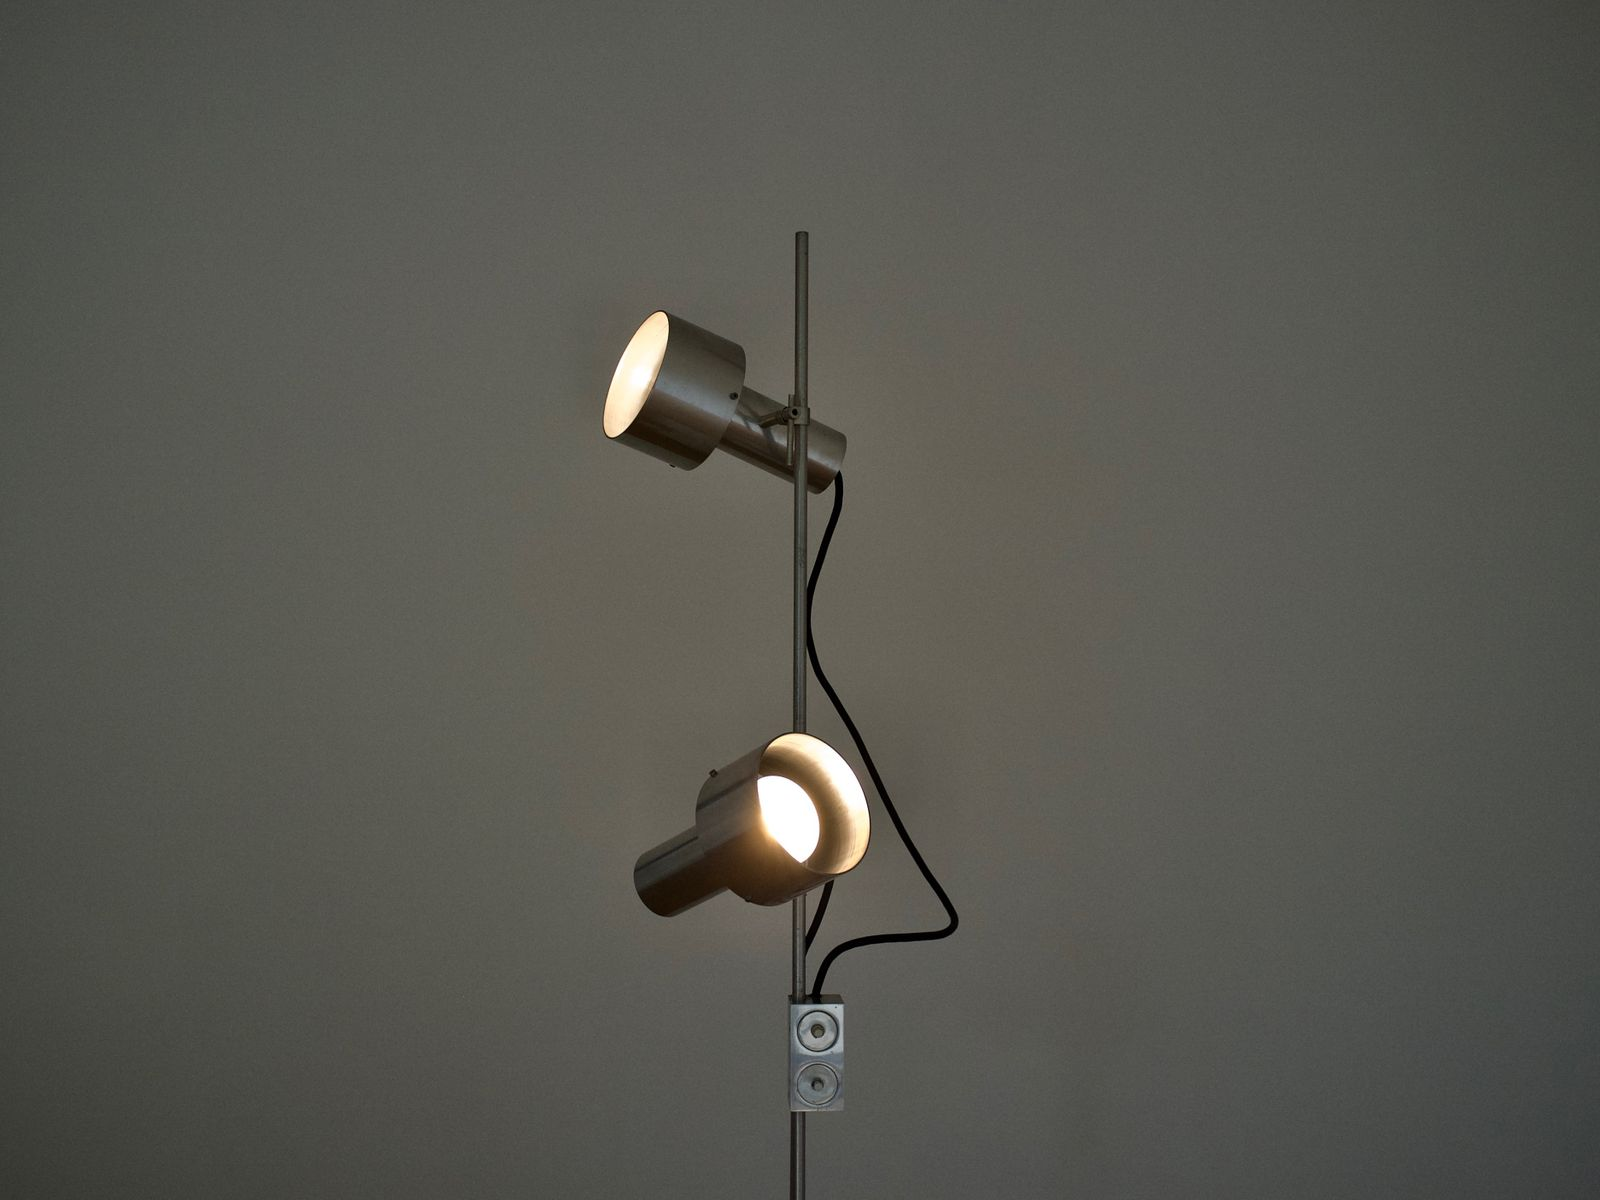 TA Aluminum Spot Floor Lamp By Peter Nelson For Architectural Lighting Compan